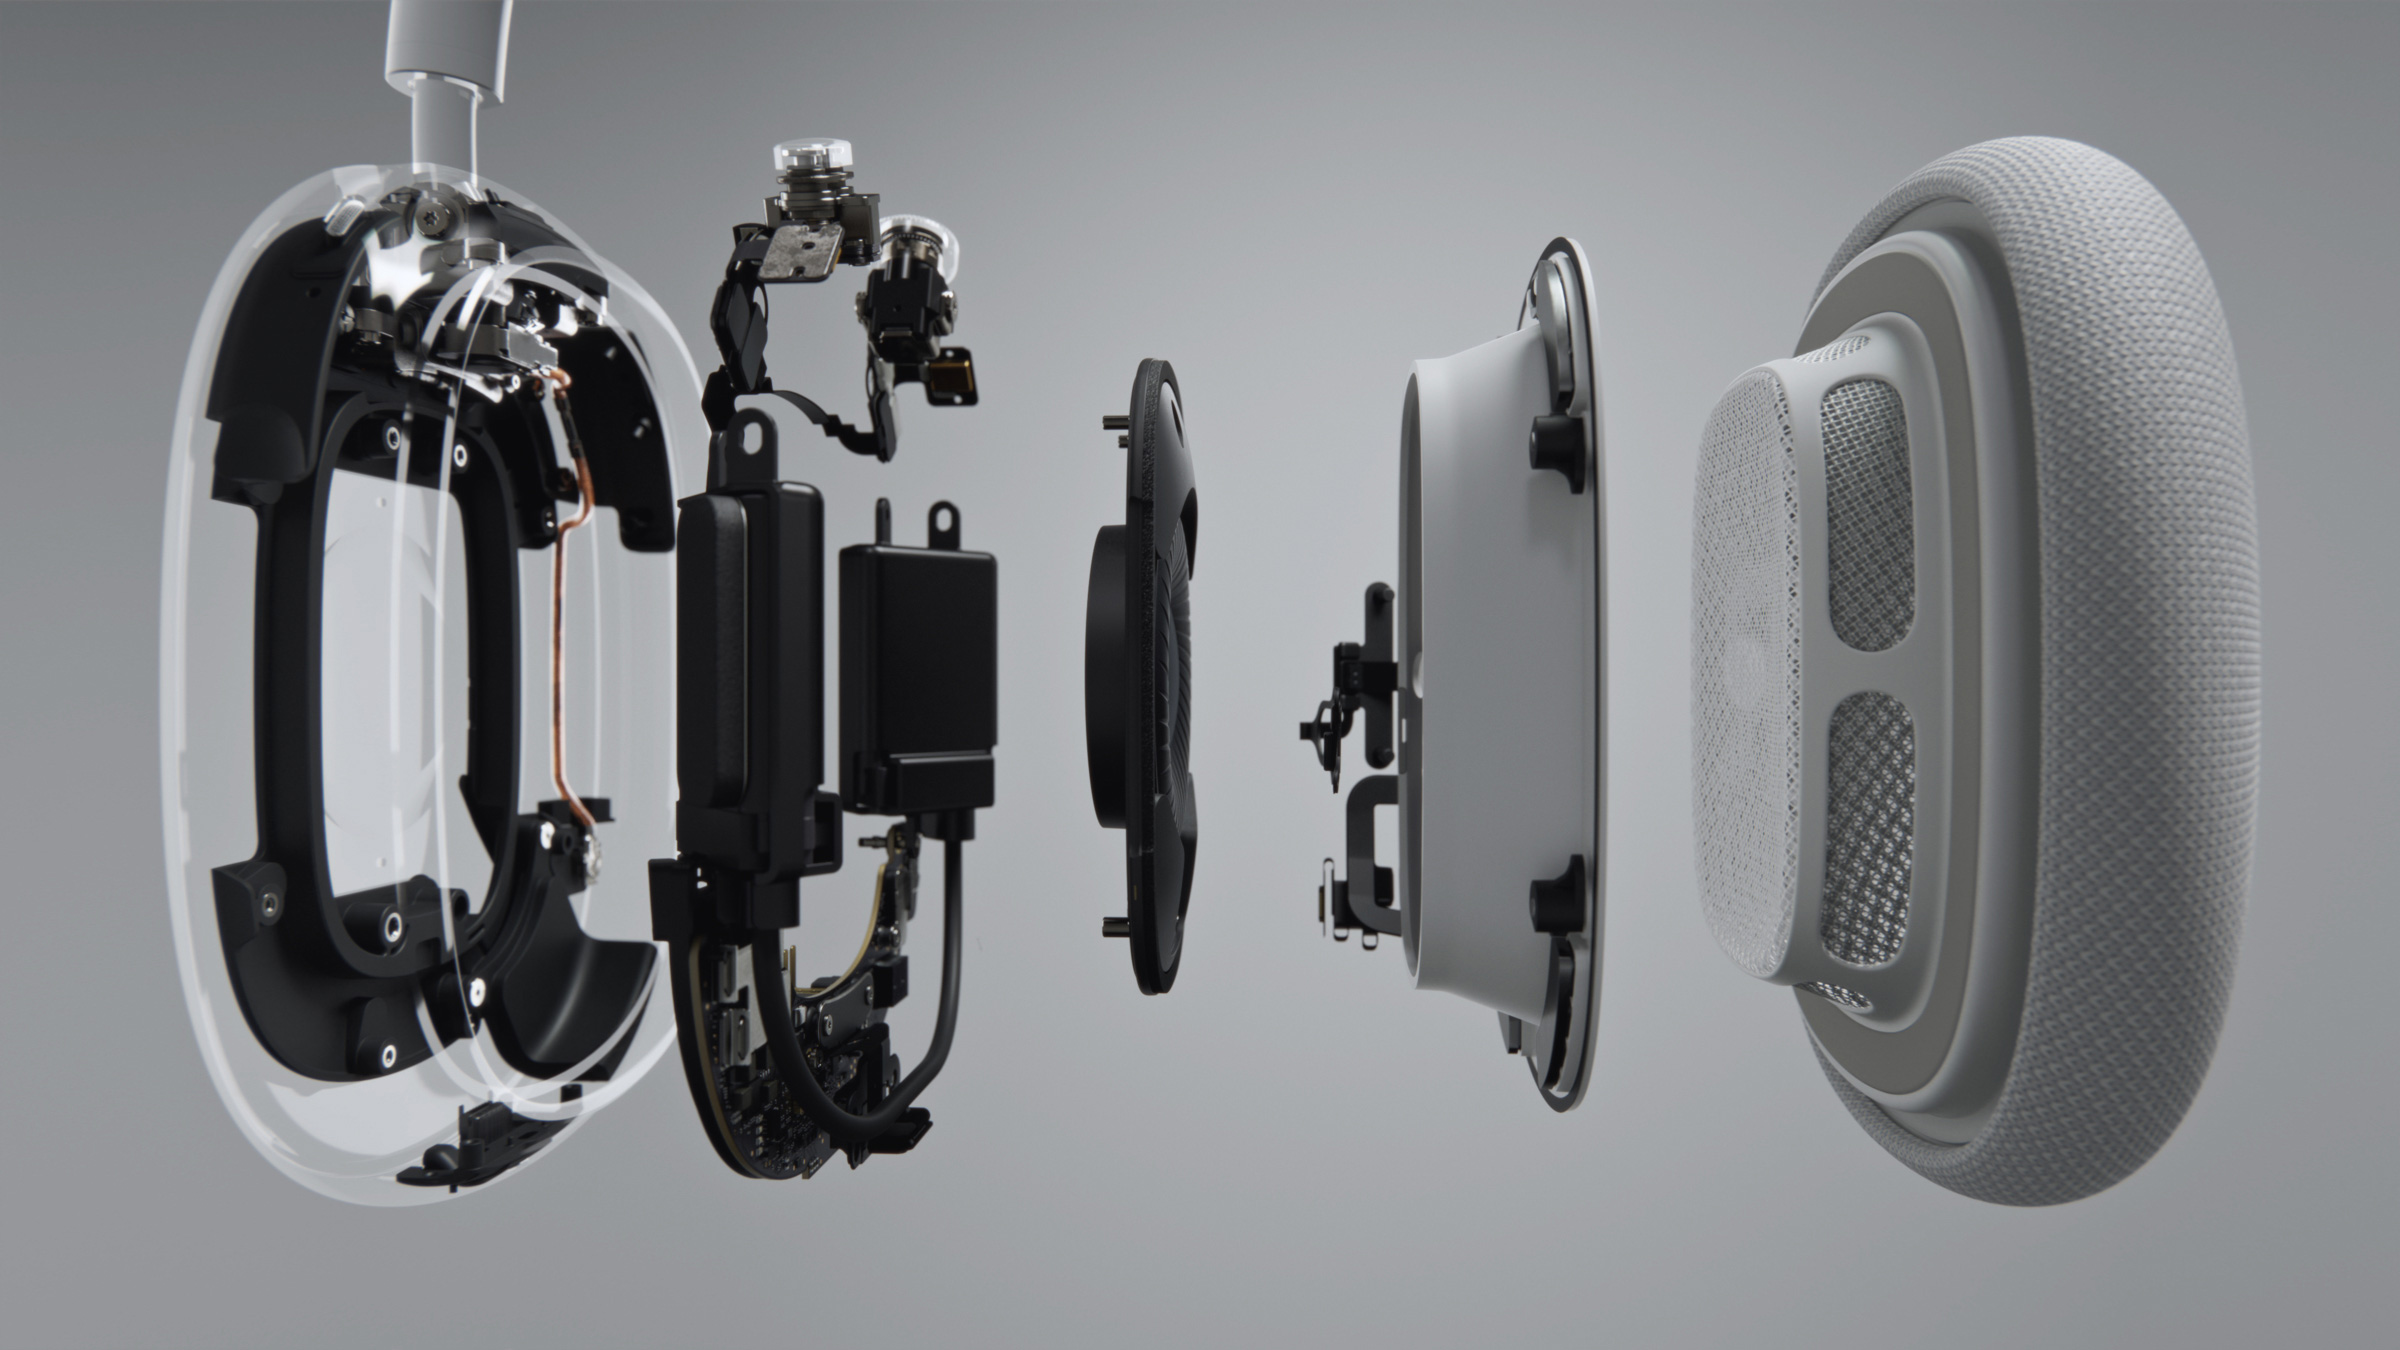 AirPods Max Exploded View